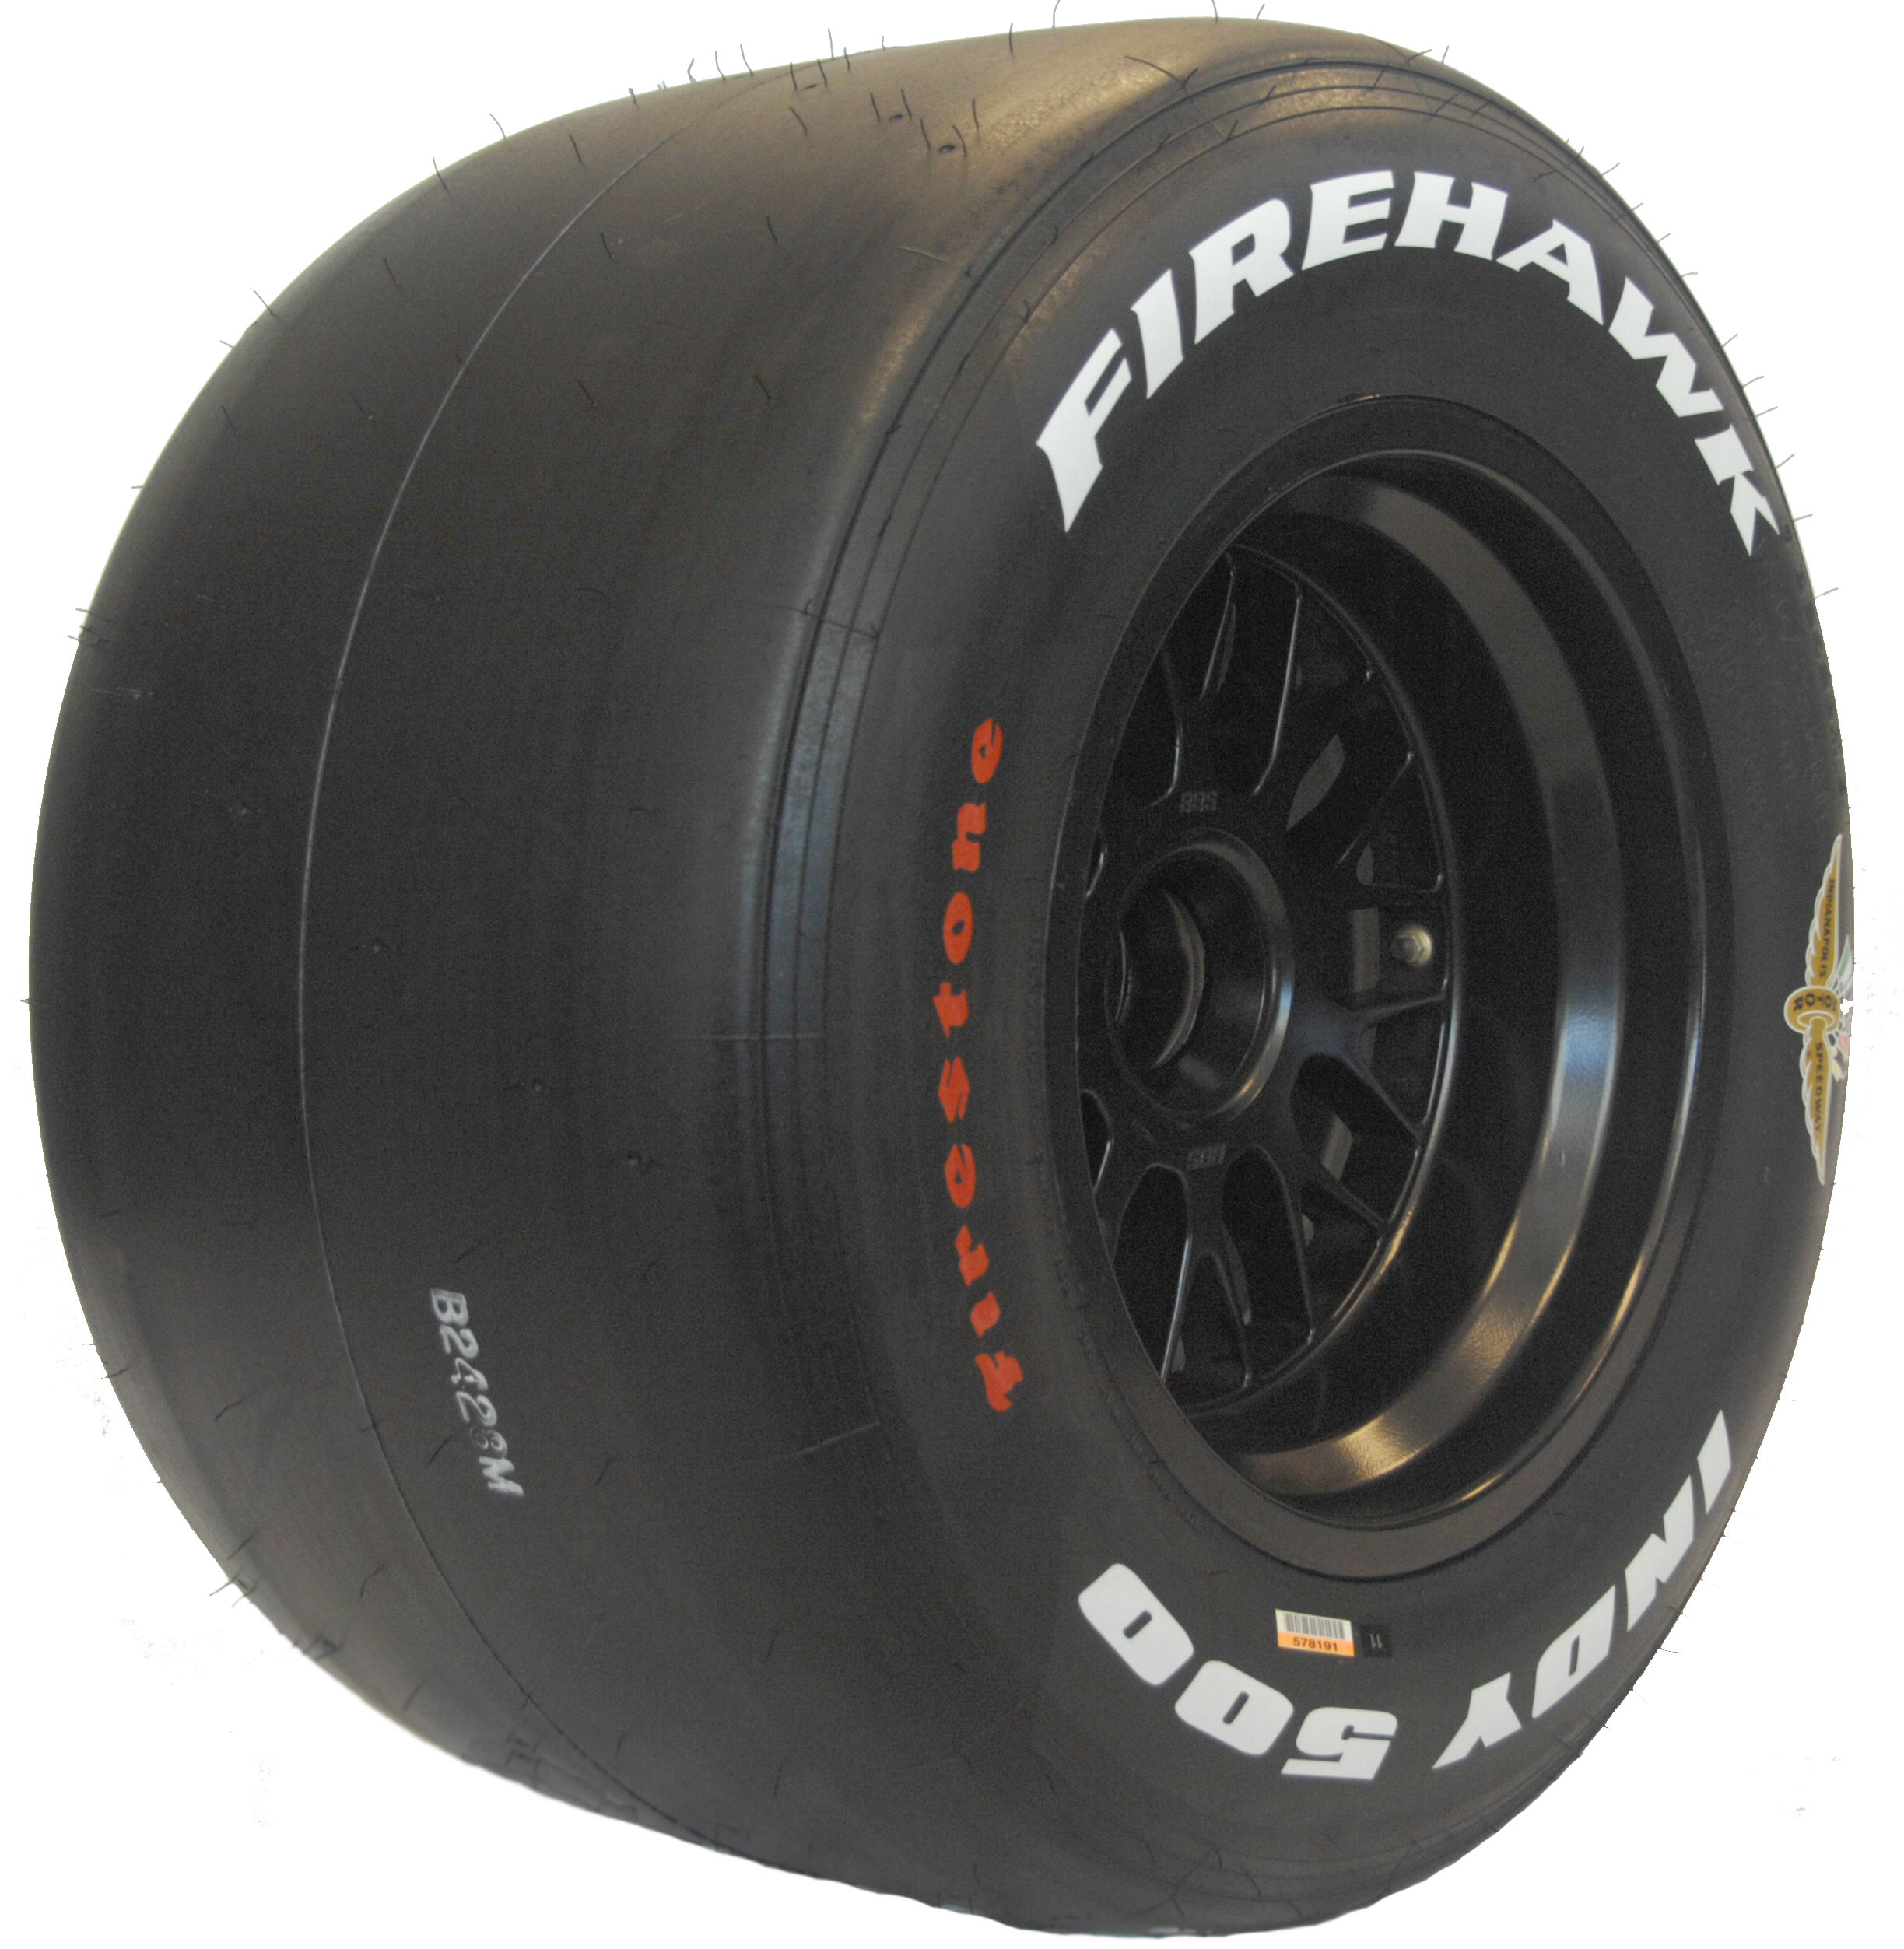 Tires affected the outcome in two big races